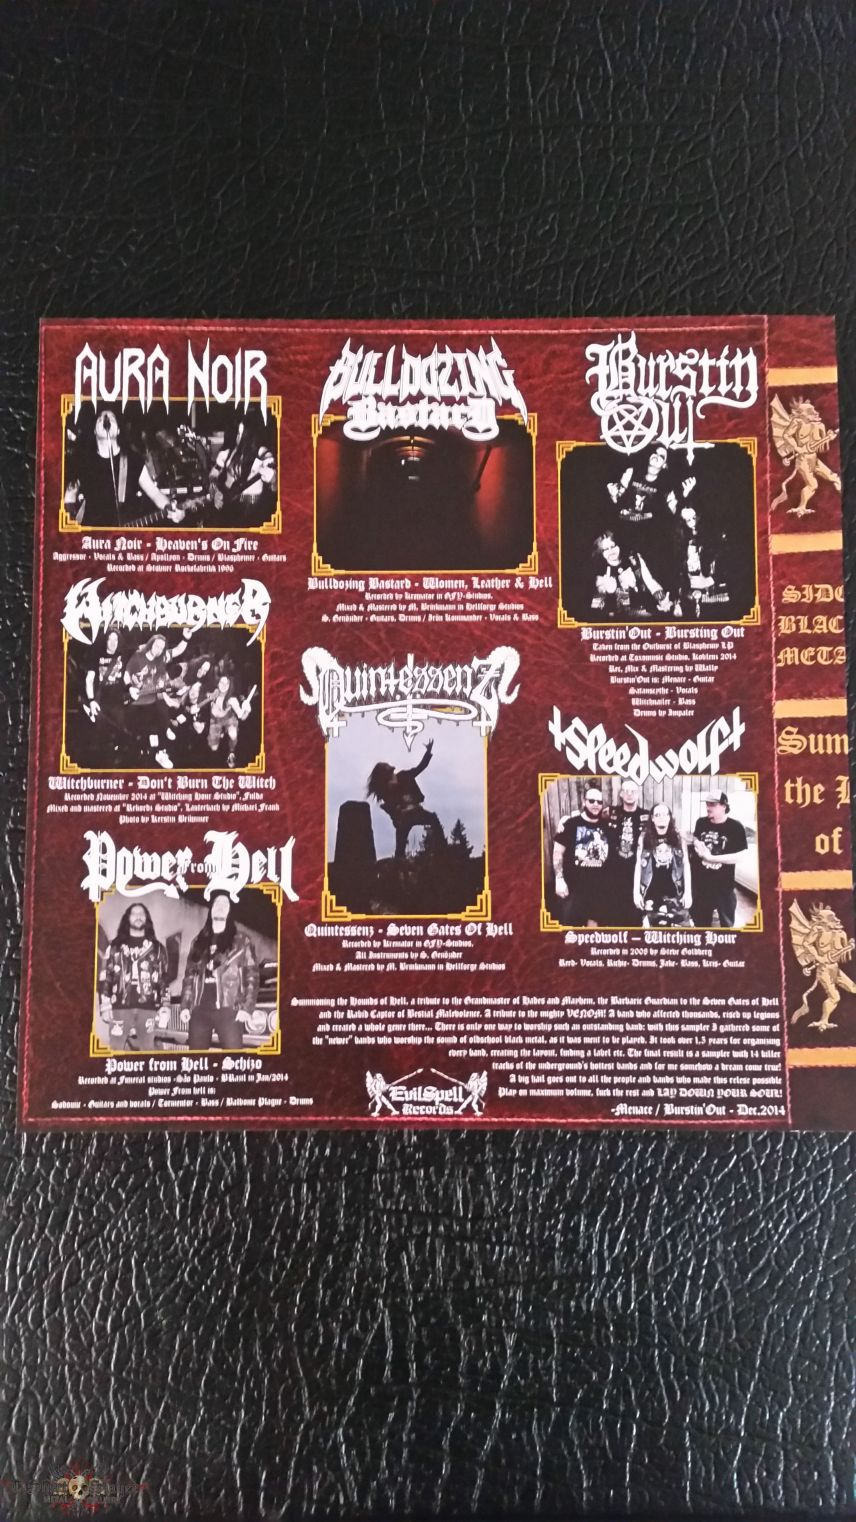 Summoning the Hounds of Hell - A Tribute To Venom